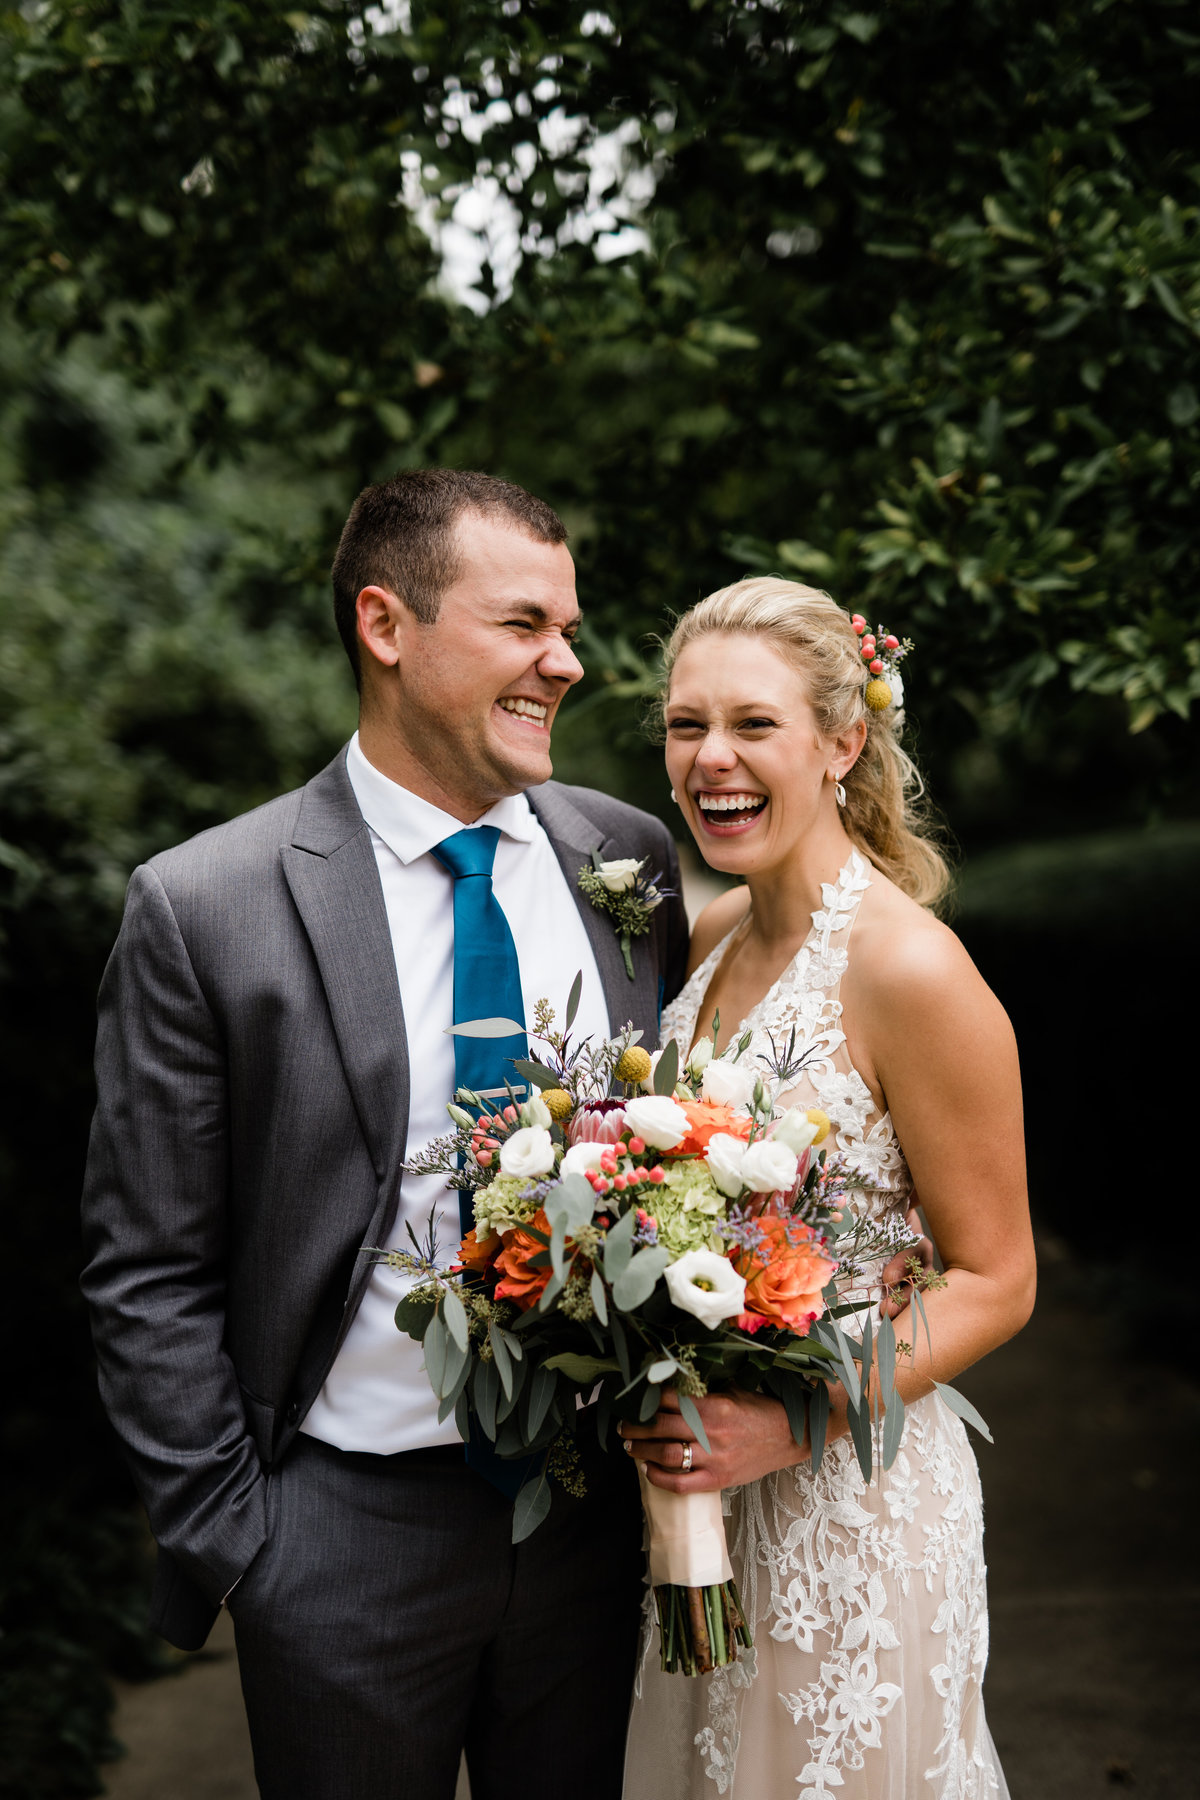 Colorful fun summer cincinnati wedding photography-47